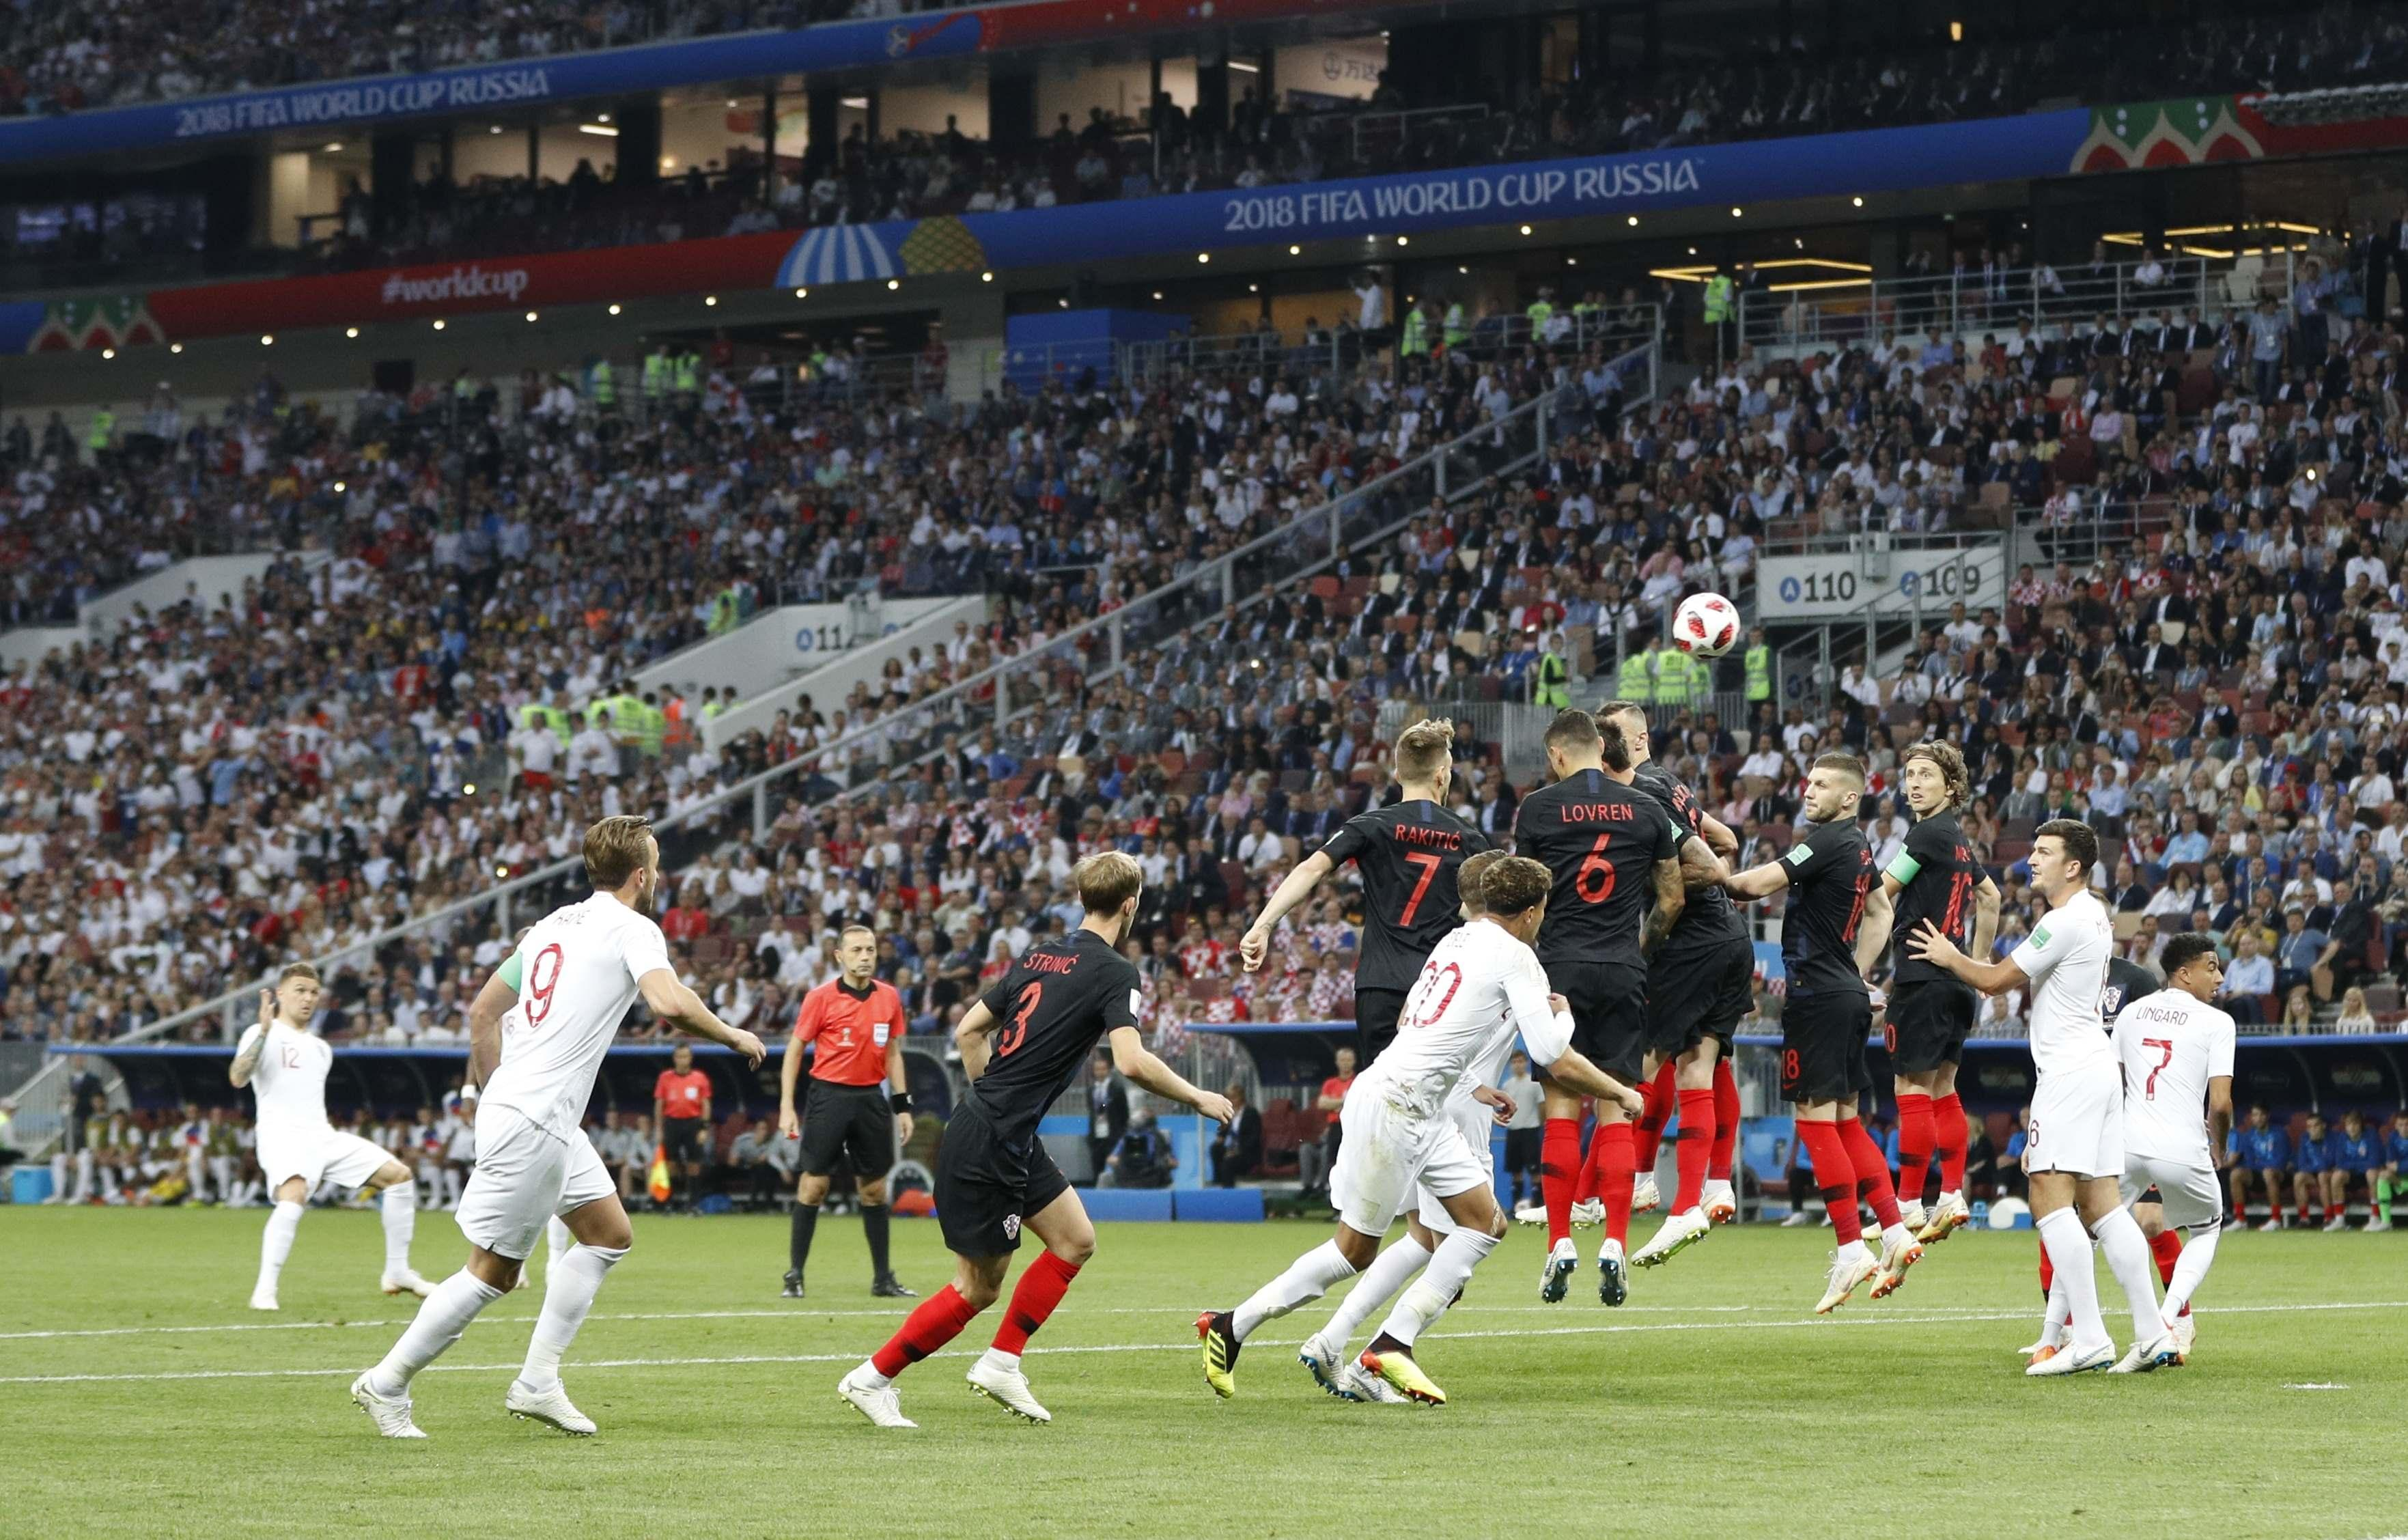 Kieran Trippier's free kick floats over the wall and into the net for an early England lead